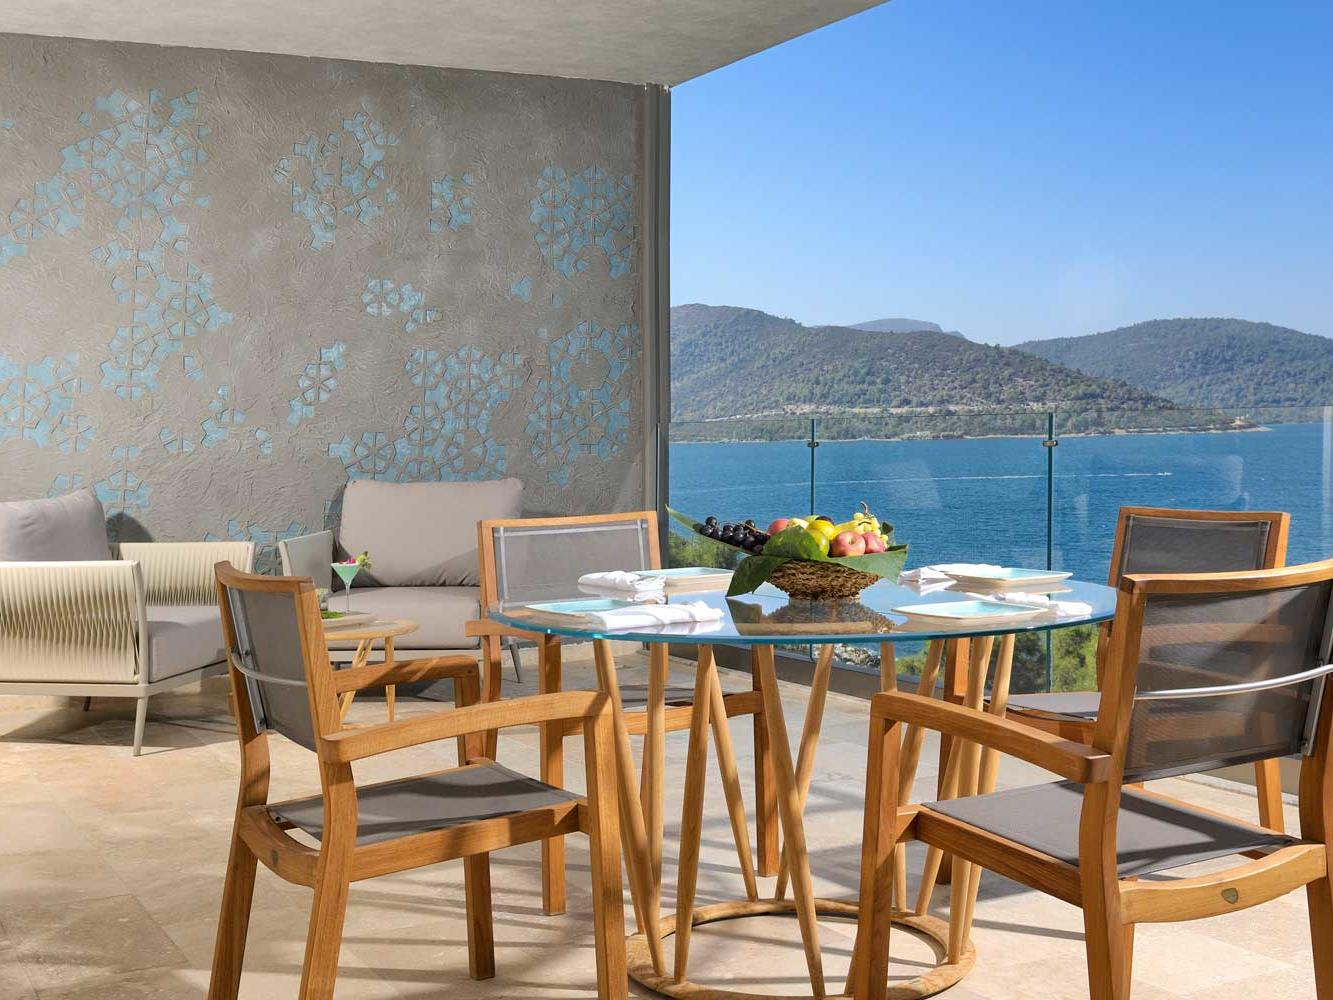 Presidential Suite at Sarpedor Boutique Beach Hotel in Bodrum, Turkey